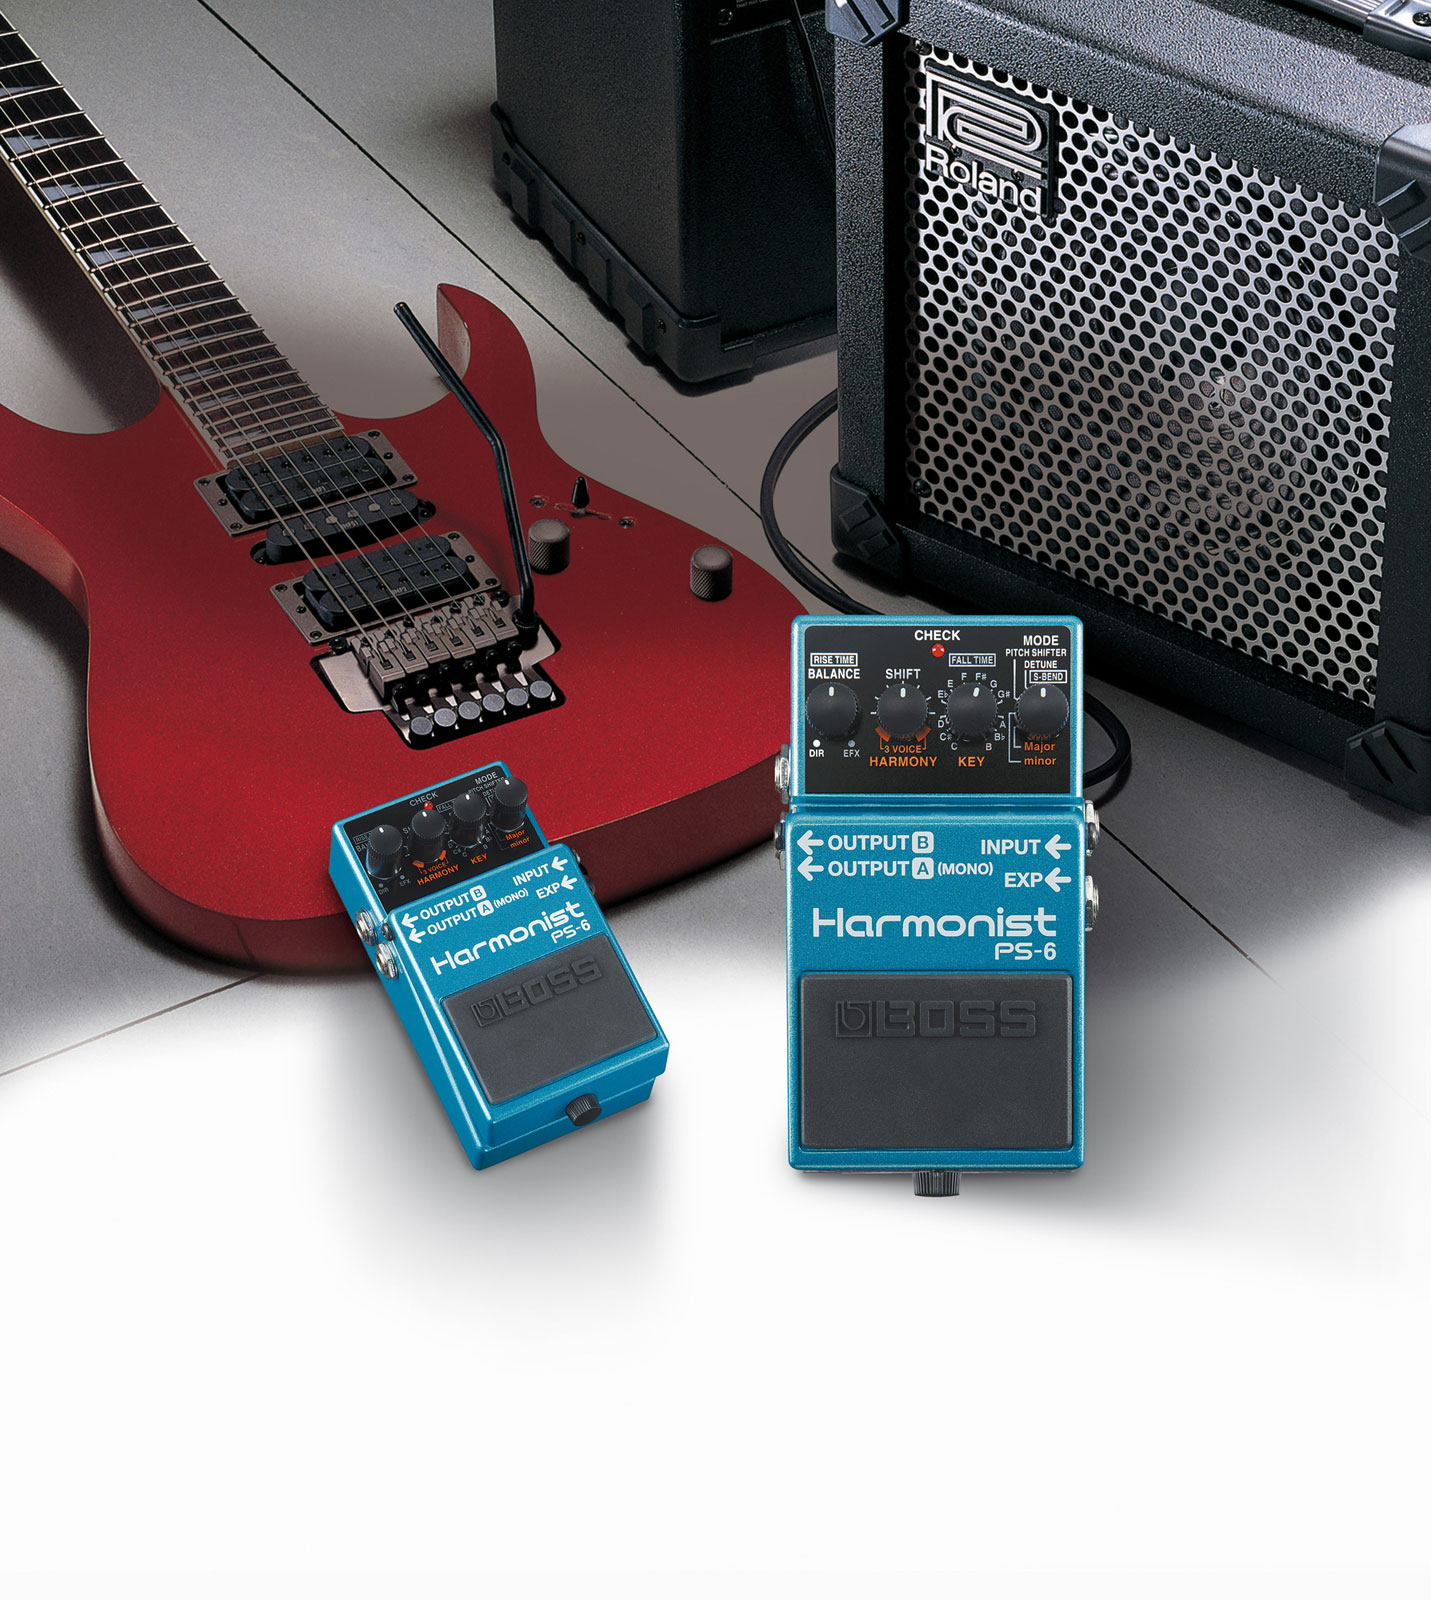 Boss PS-6 Harmonist Compact Pedal